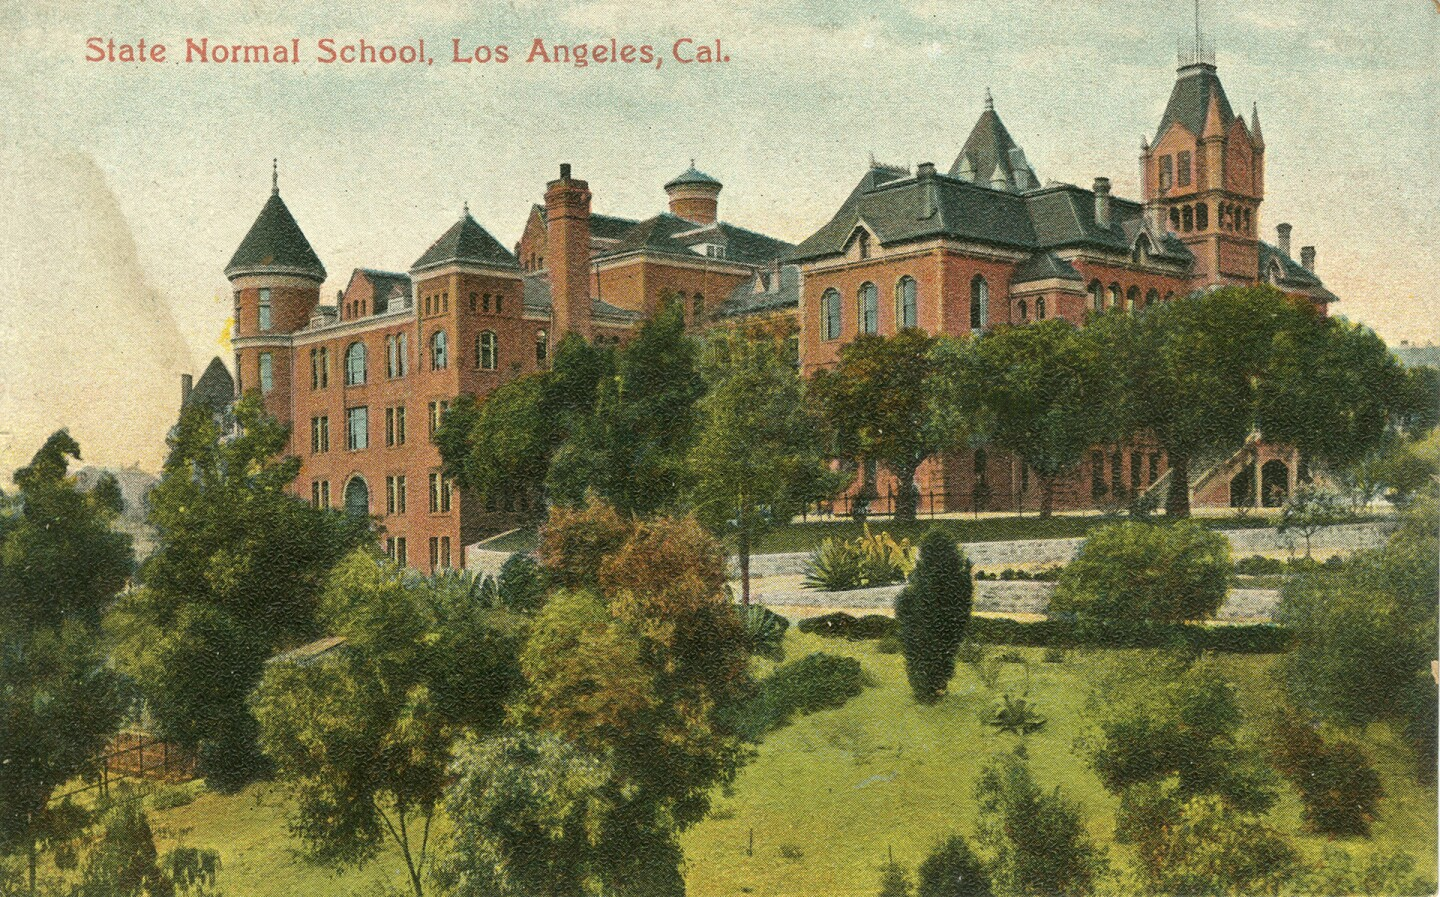 Circa 1910 postcard of the State Normal School